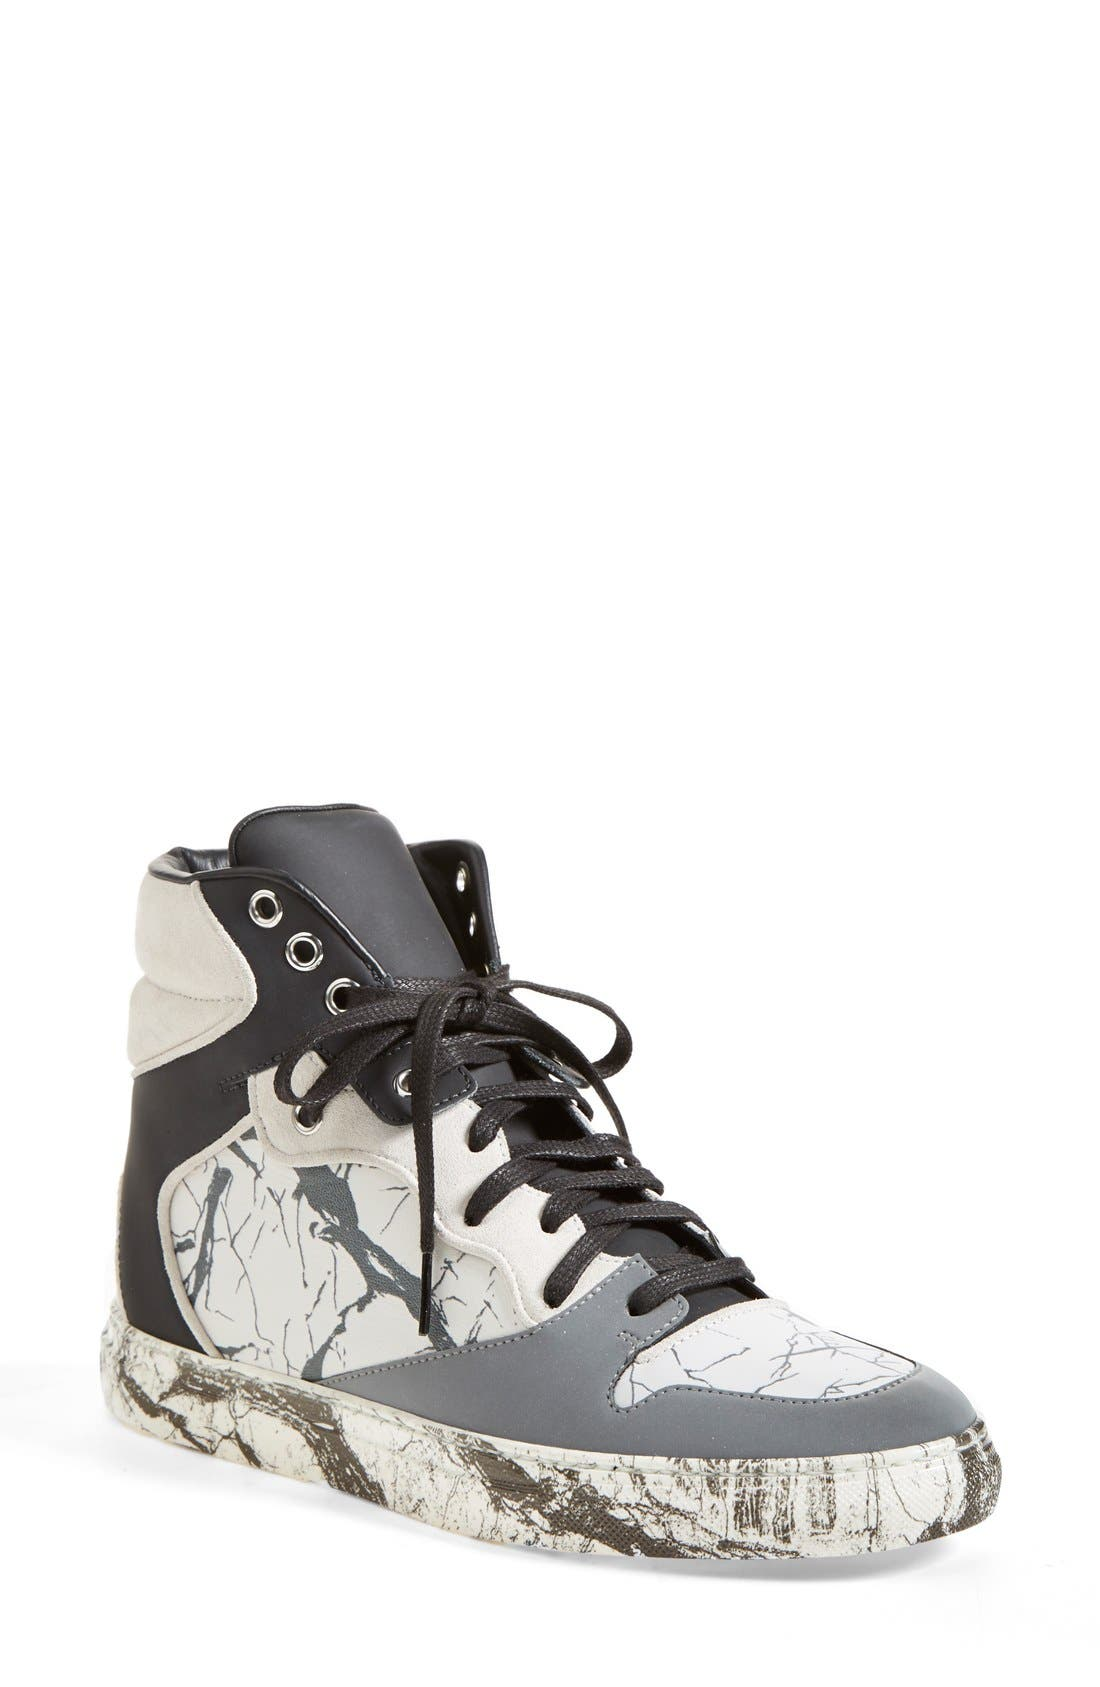 Main Image - Balenciaga Nappa Leather High Top Sneaker (Women)